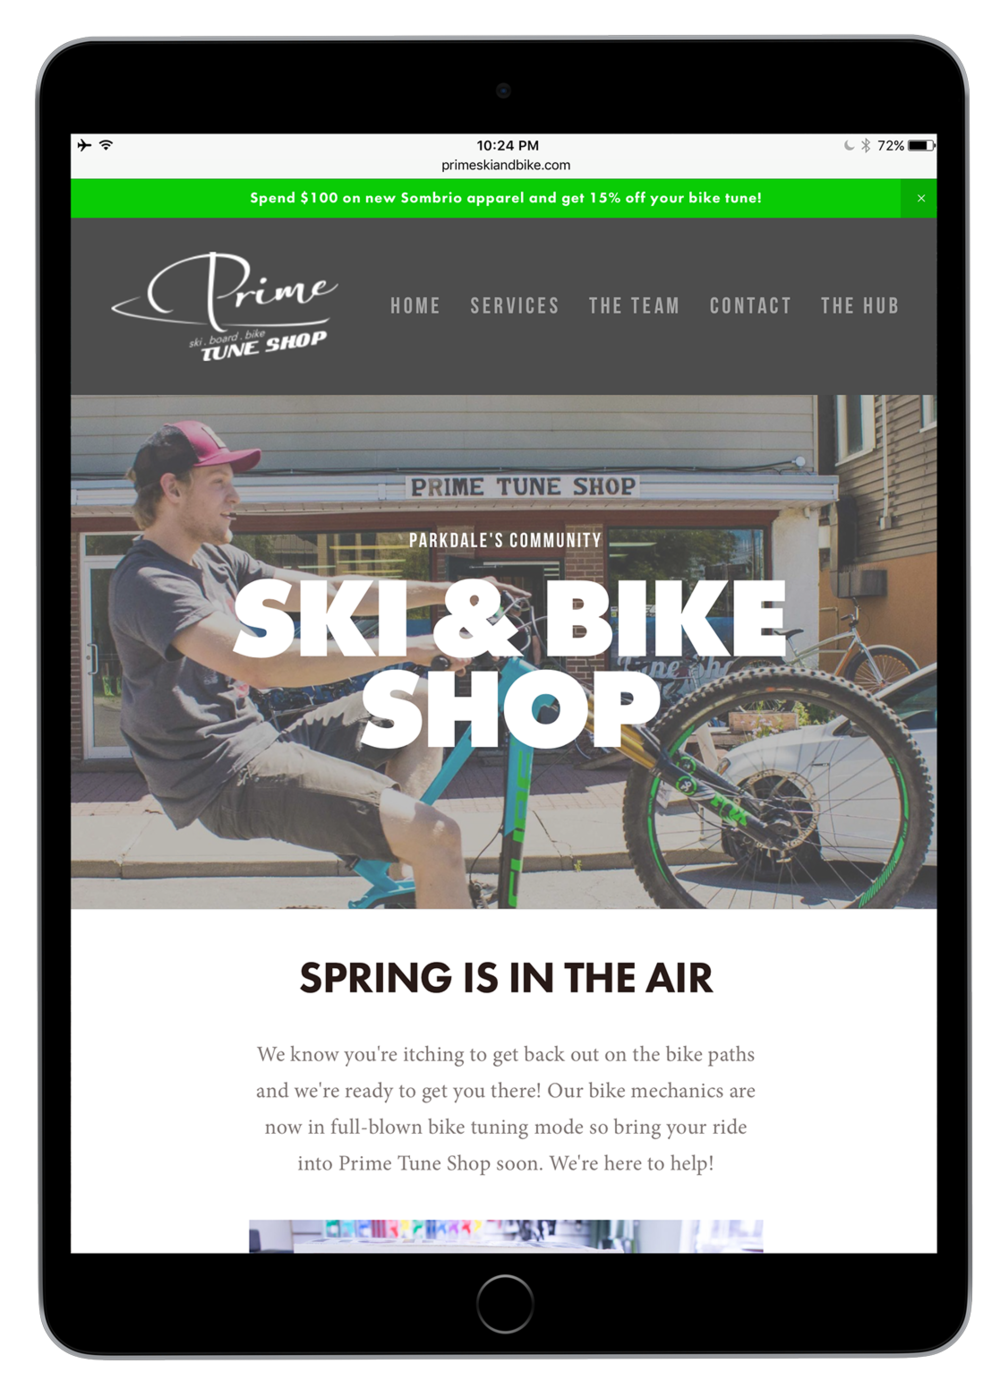 Prime Tune Ski & Bike Shop homepage, spring.